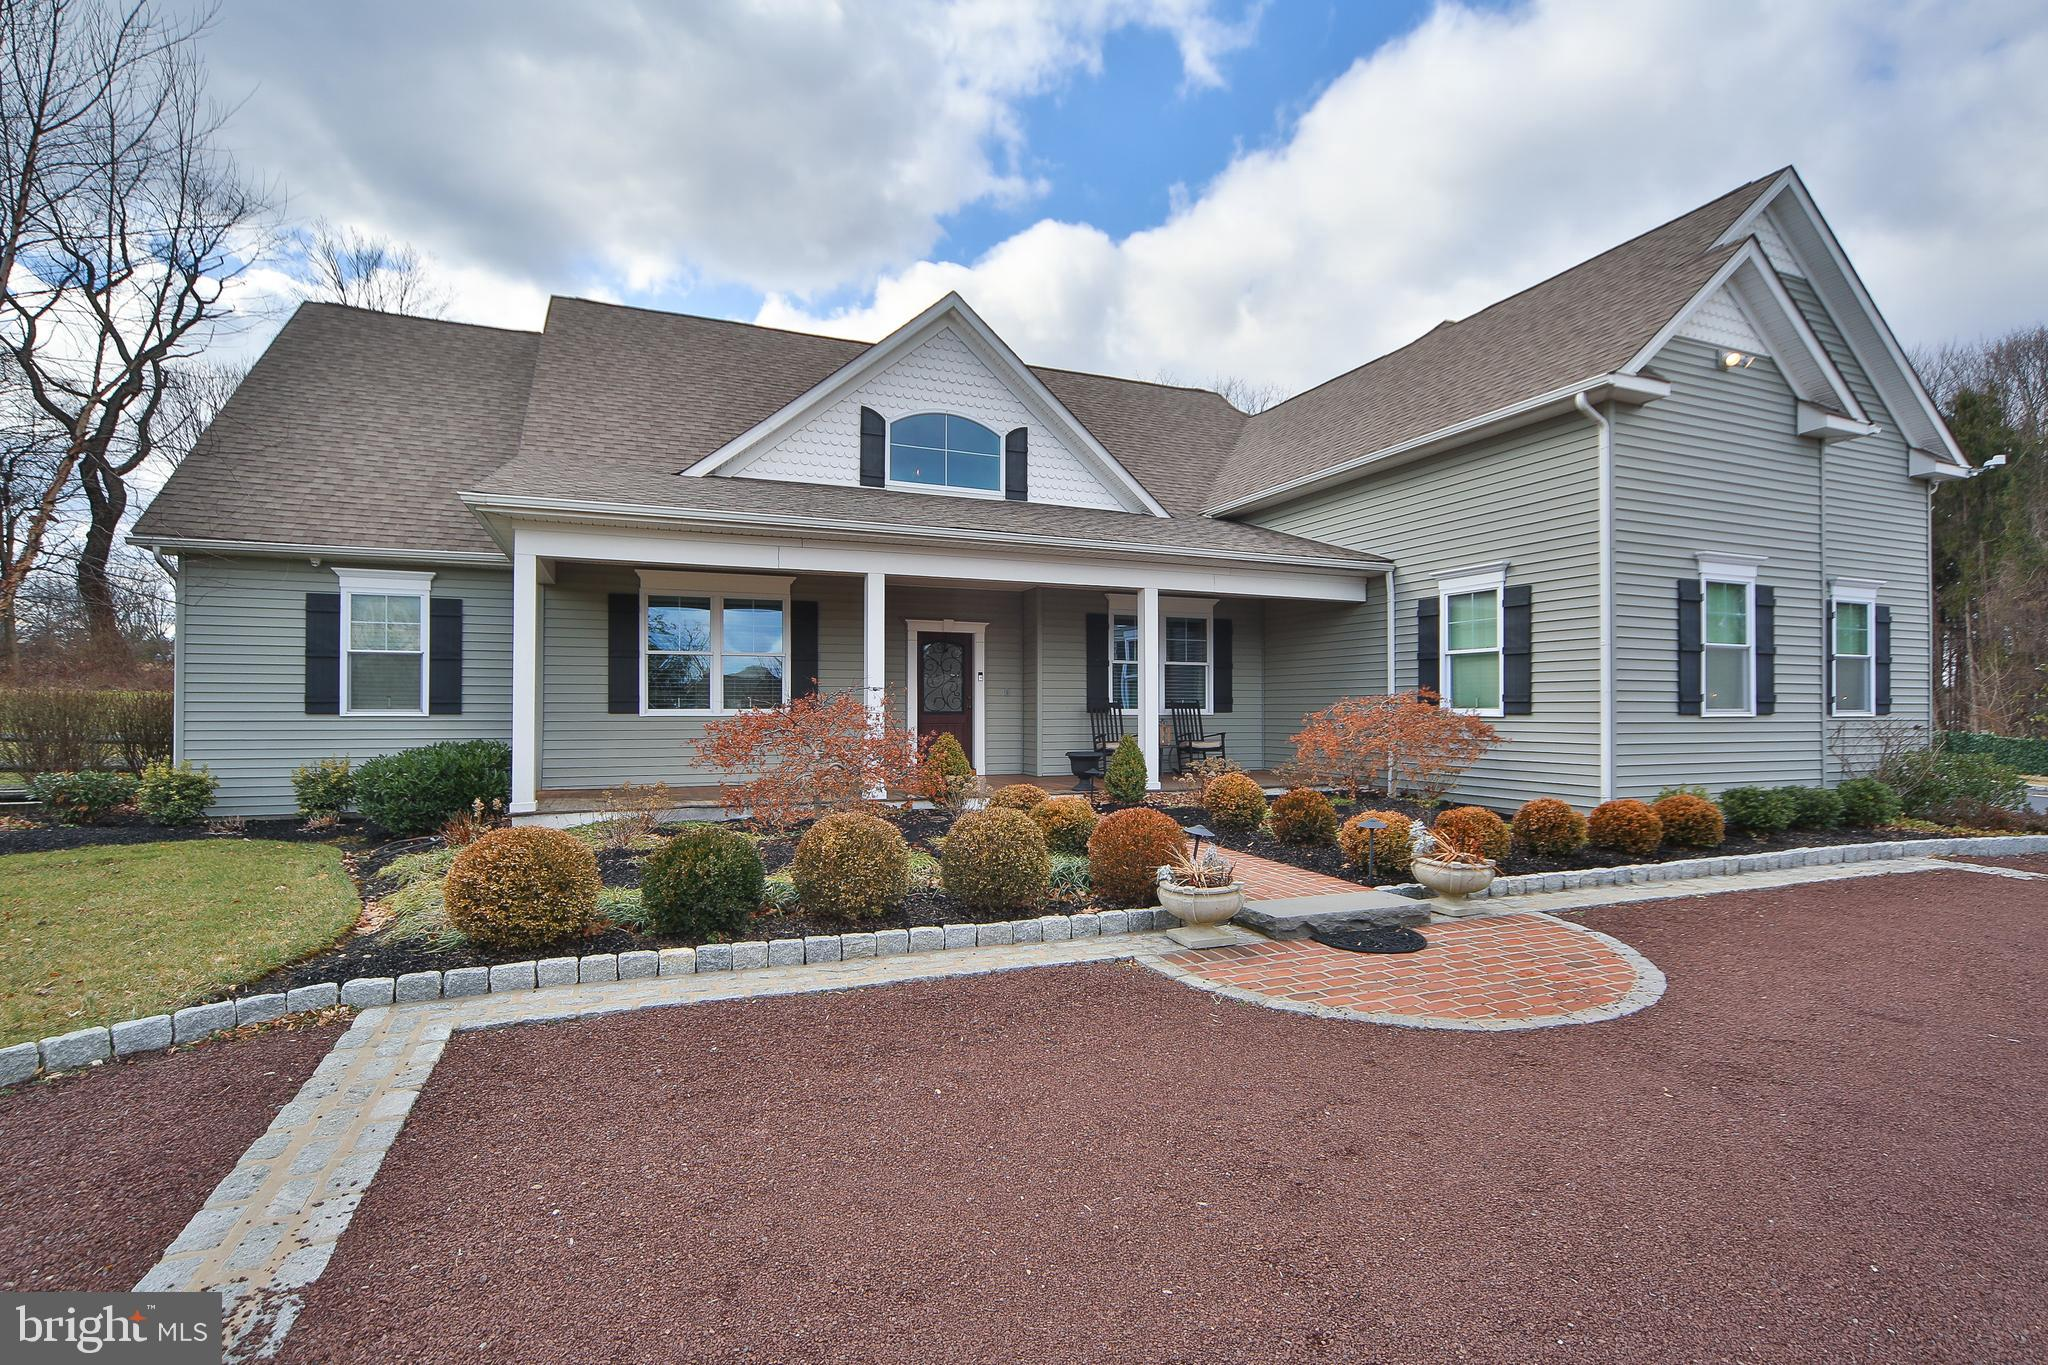 483 HOLLY ROAD, BLUE BELL, PA 19422